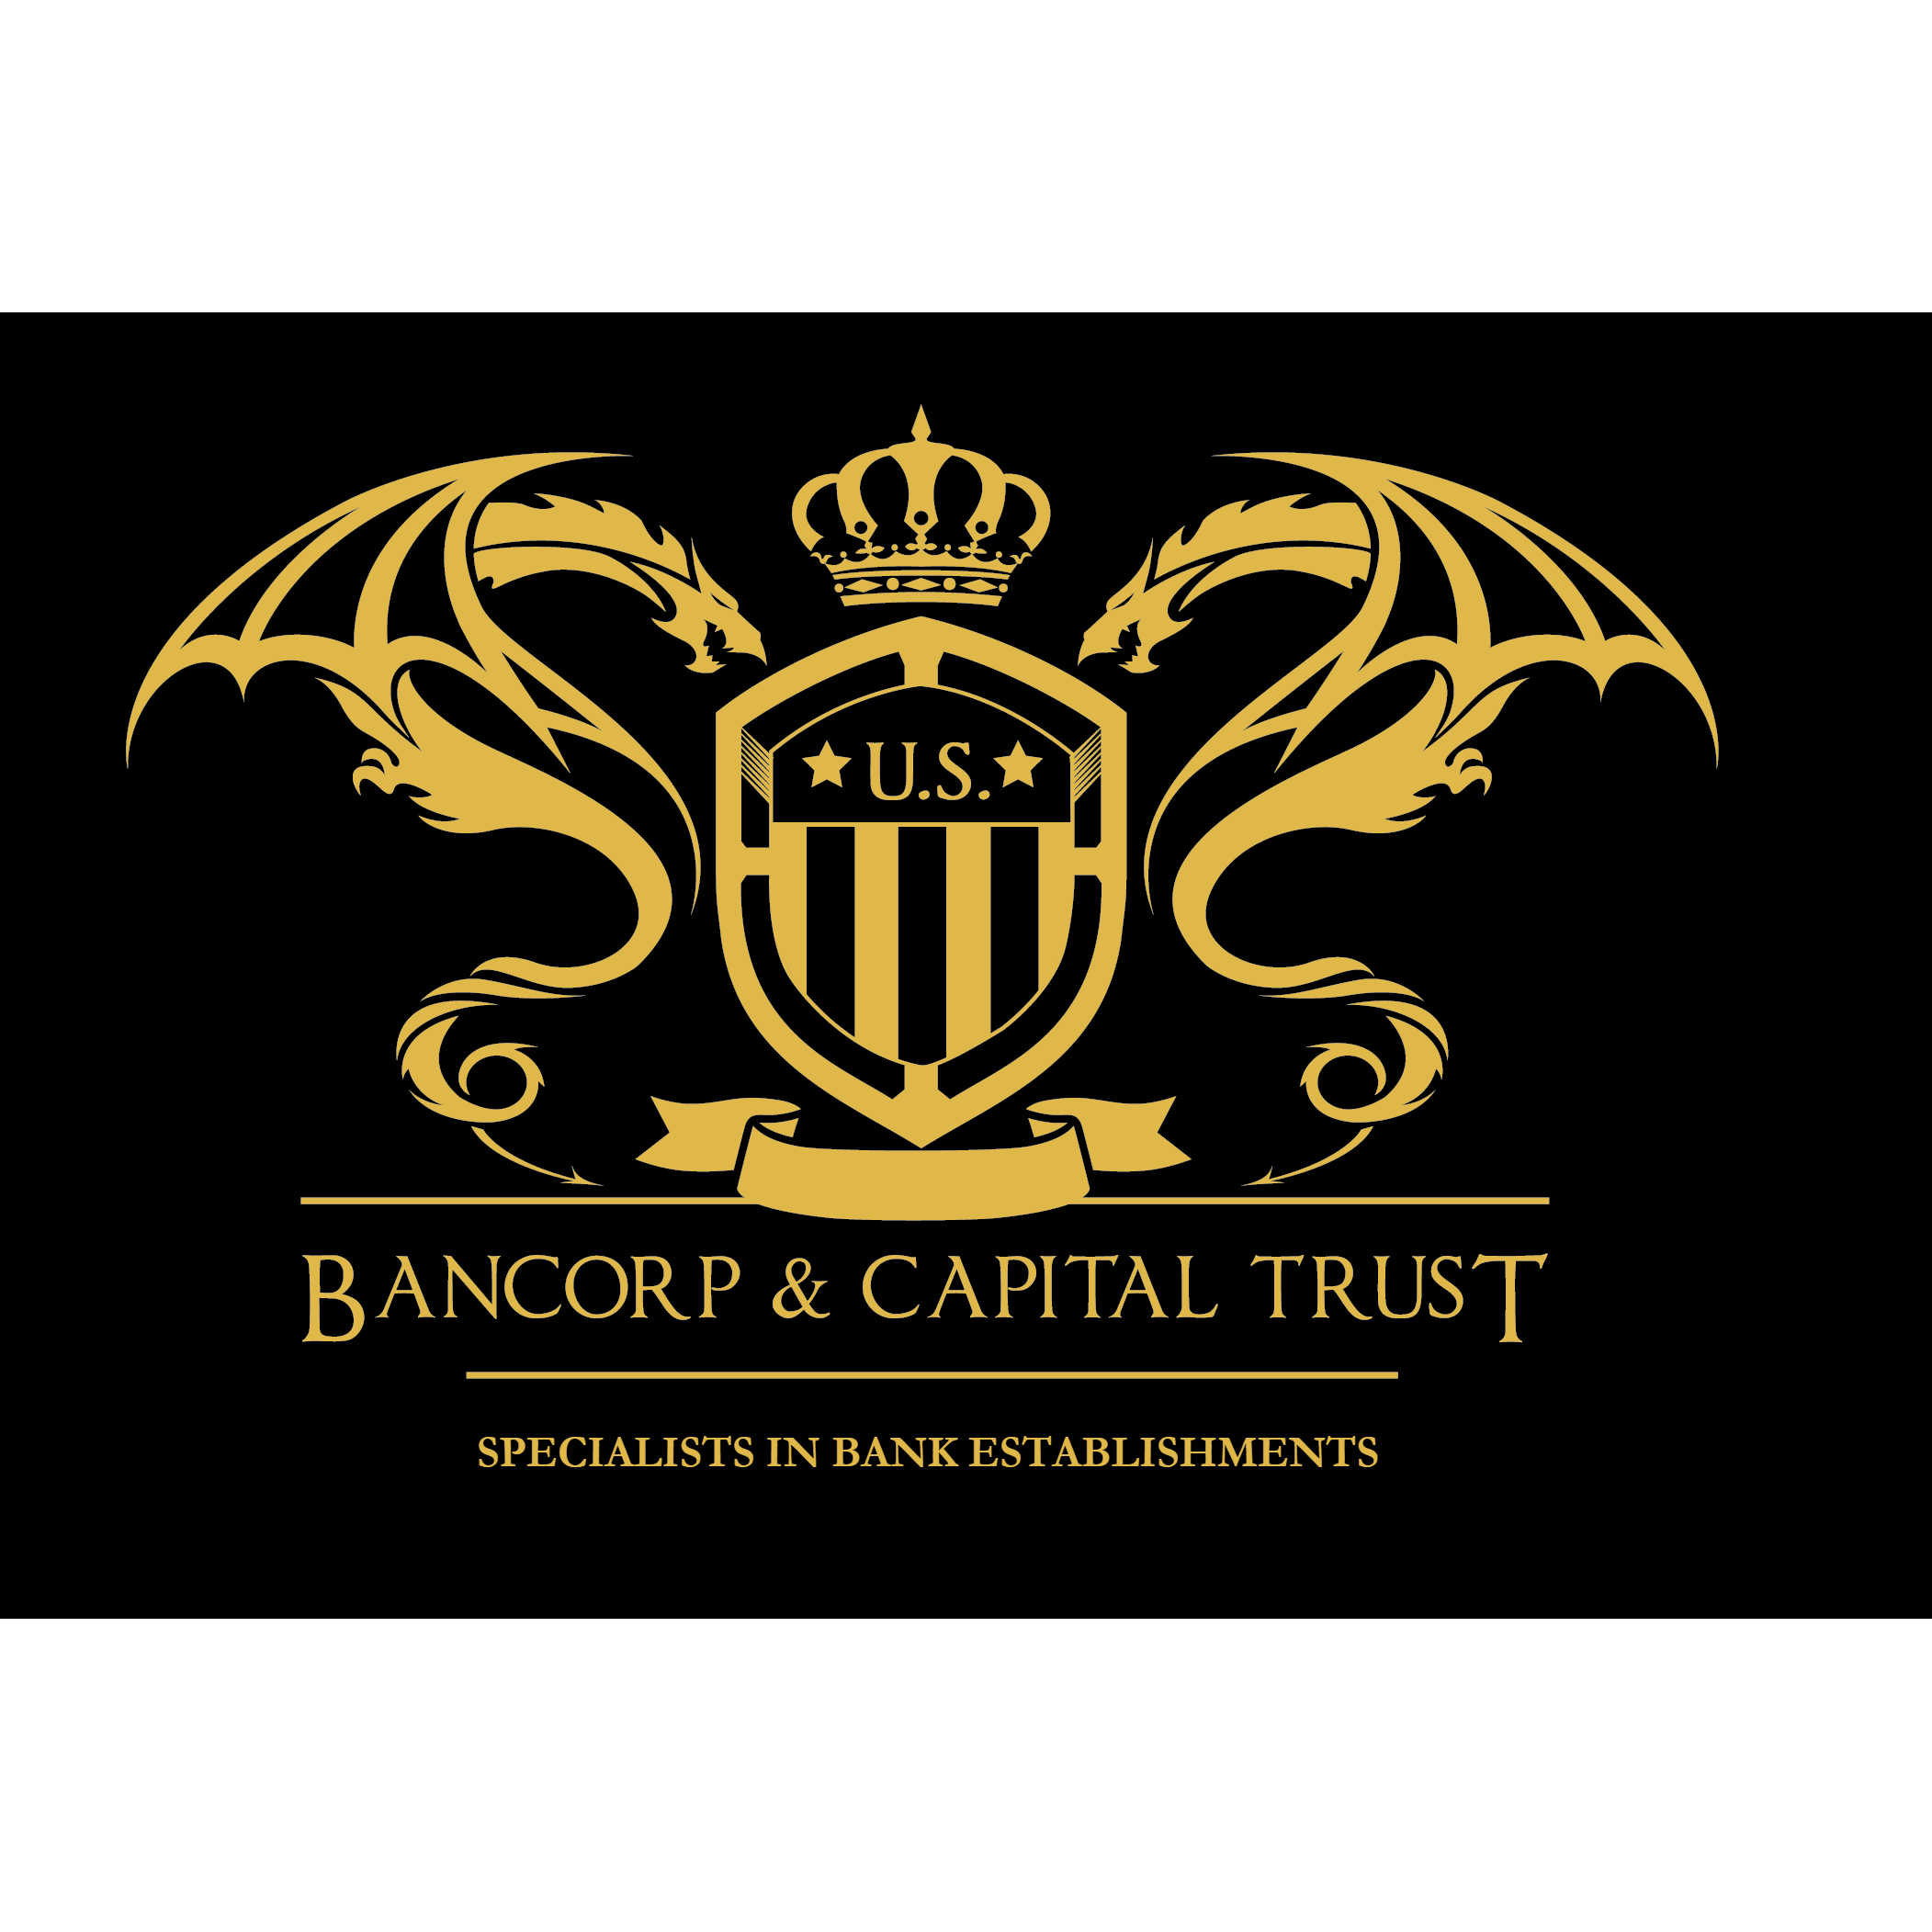 U.S. Bancorp  and  Capital Trust